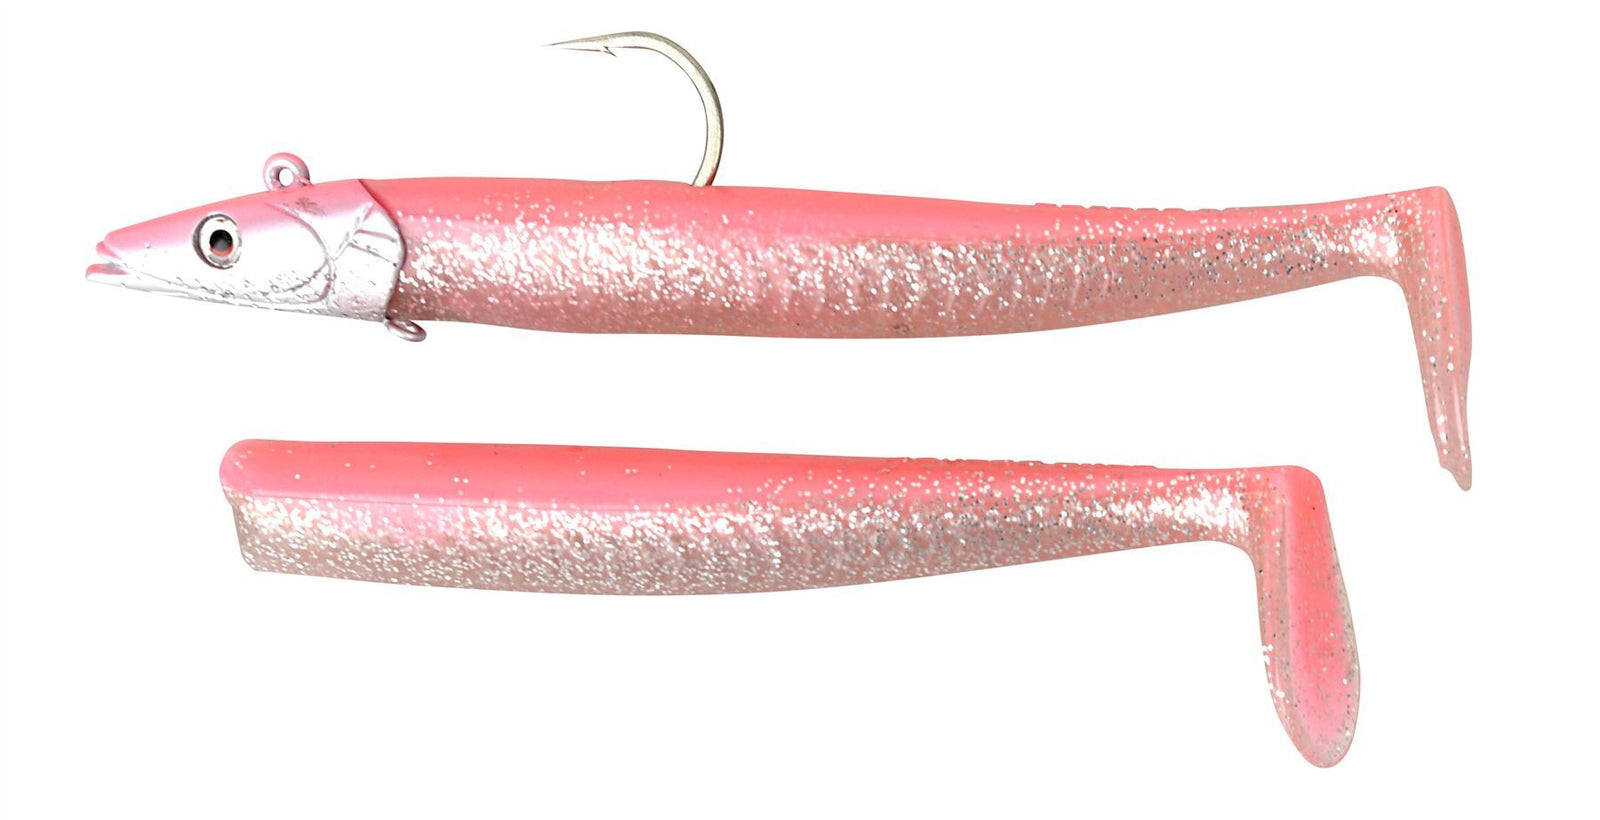 SAVAGE-GEAR-Sandeel-12.5cm-23g Lure - reid outdoors